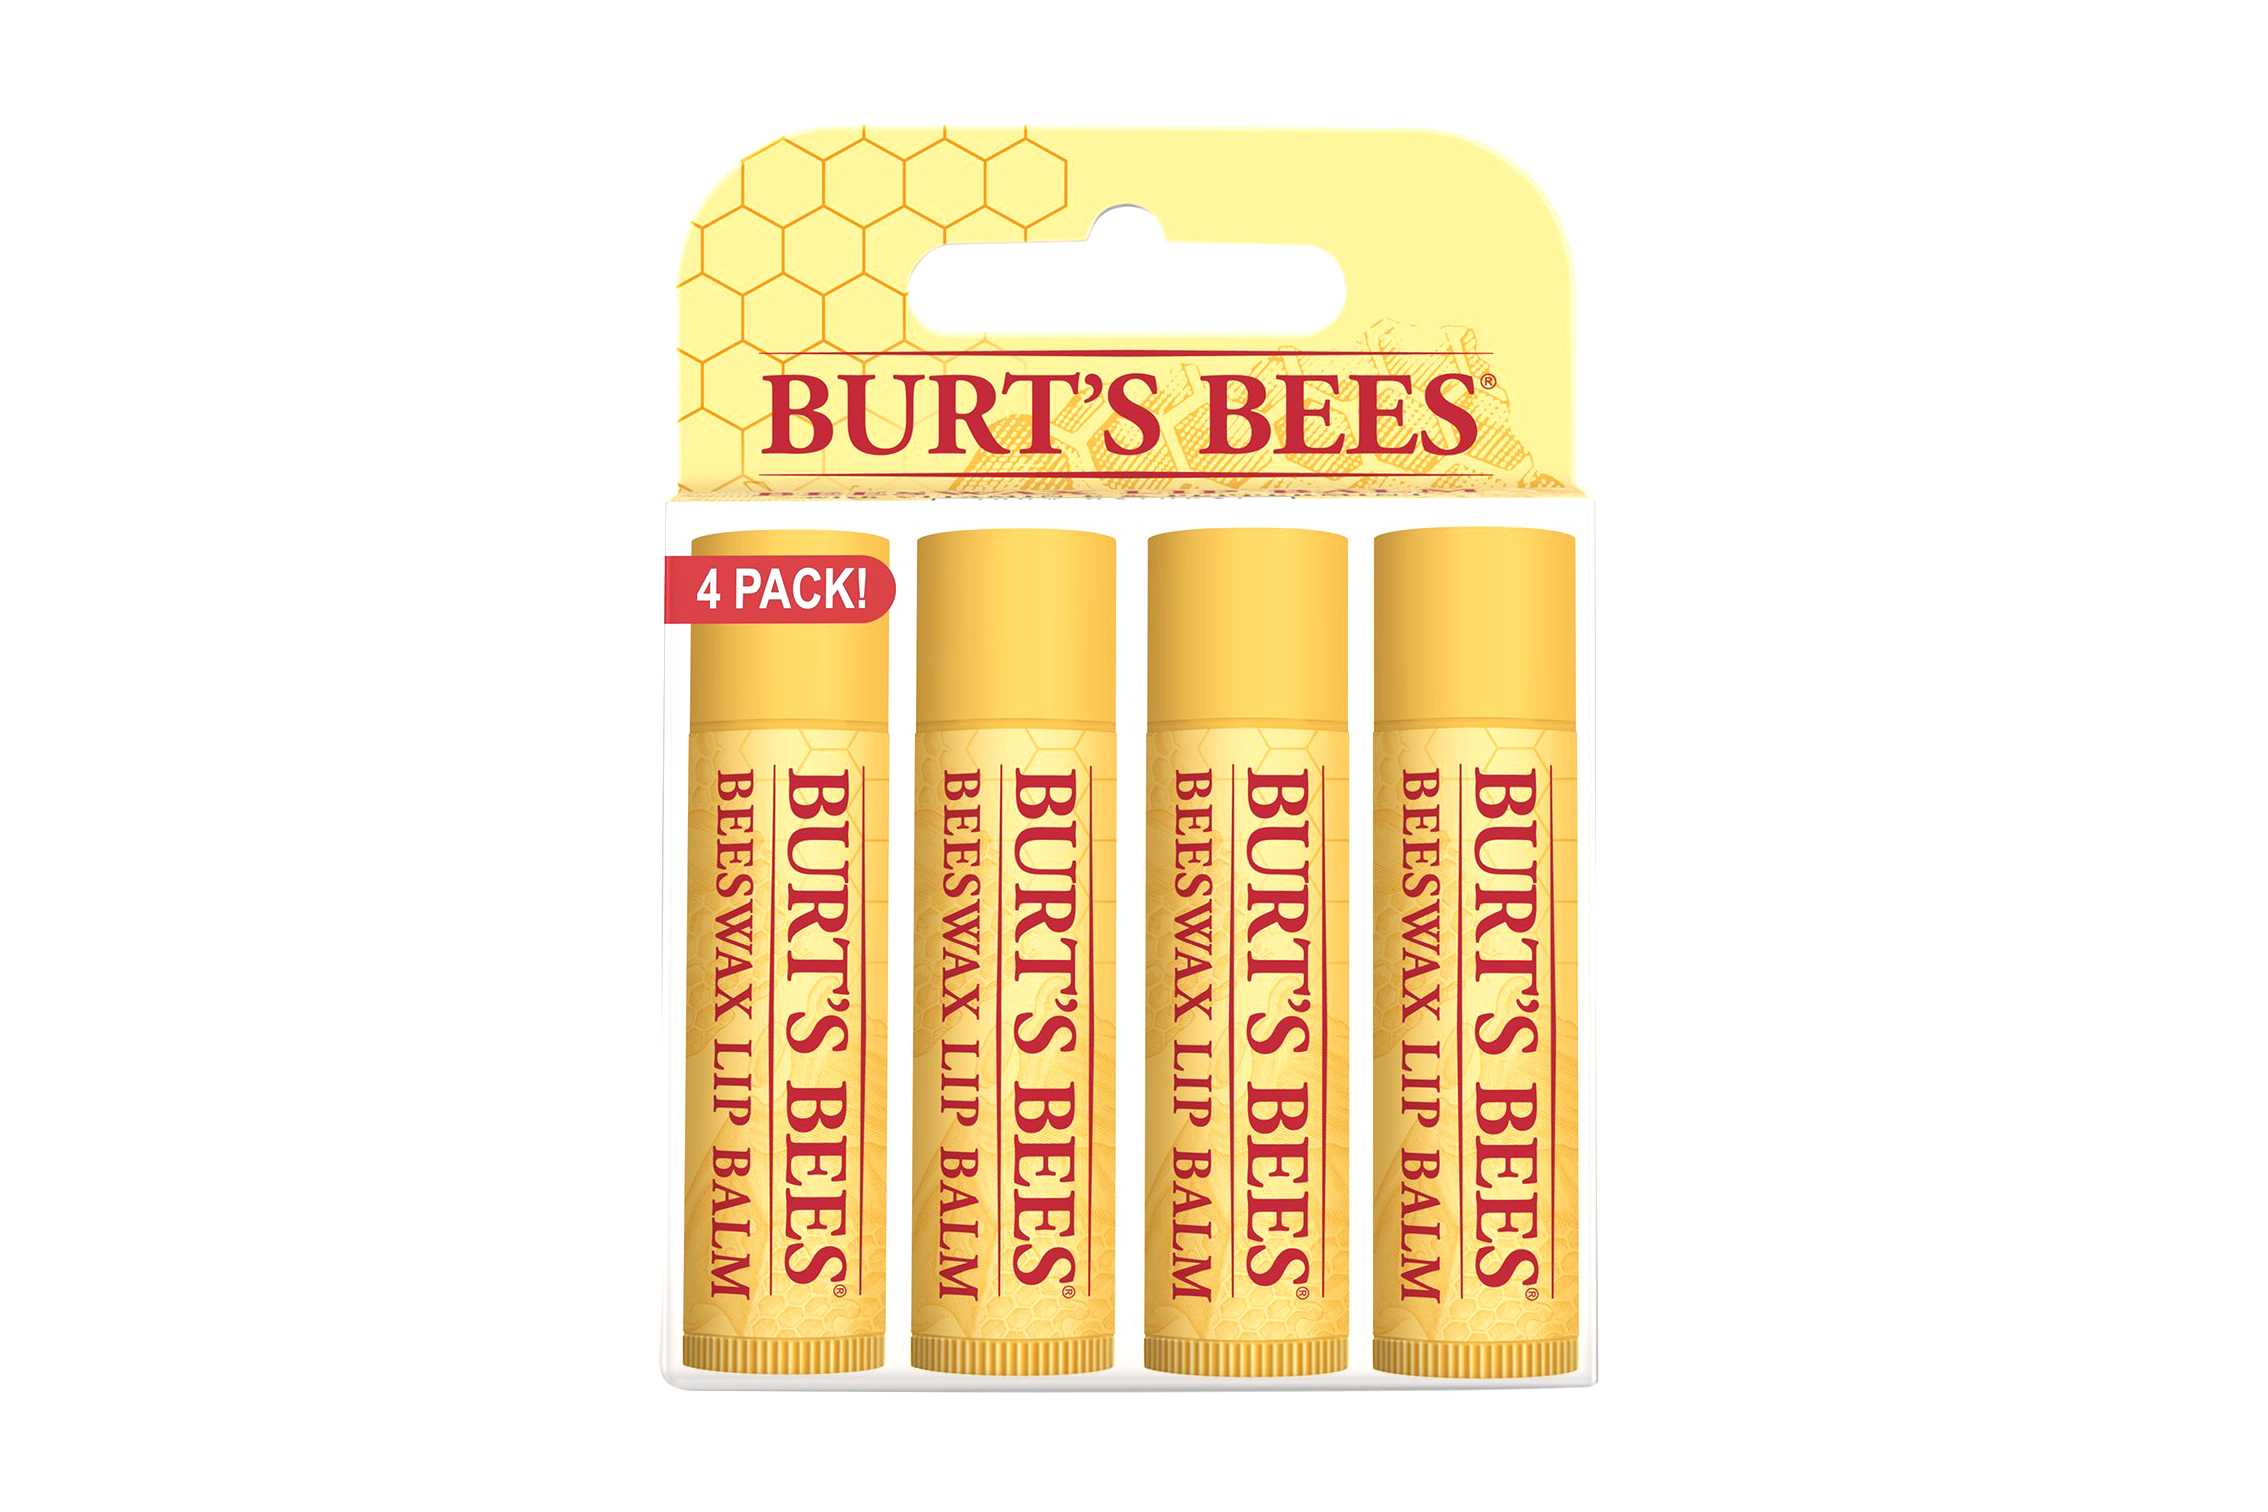 100% Natural Lip Balm Beeswax, 4 count - 4.5 stars - $9 (Prime)